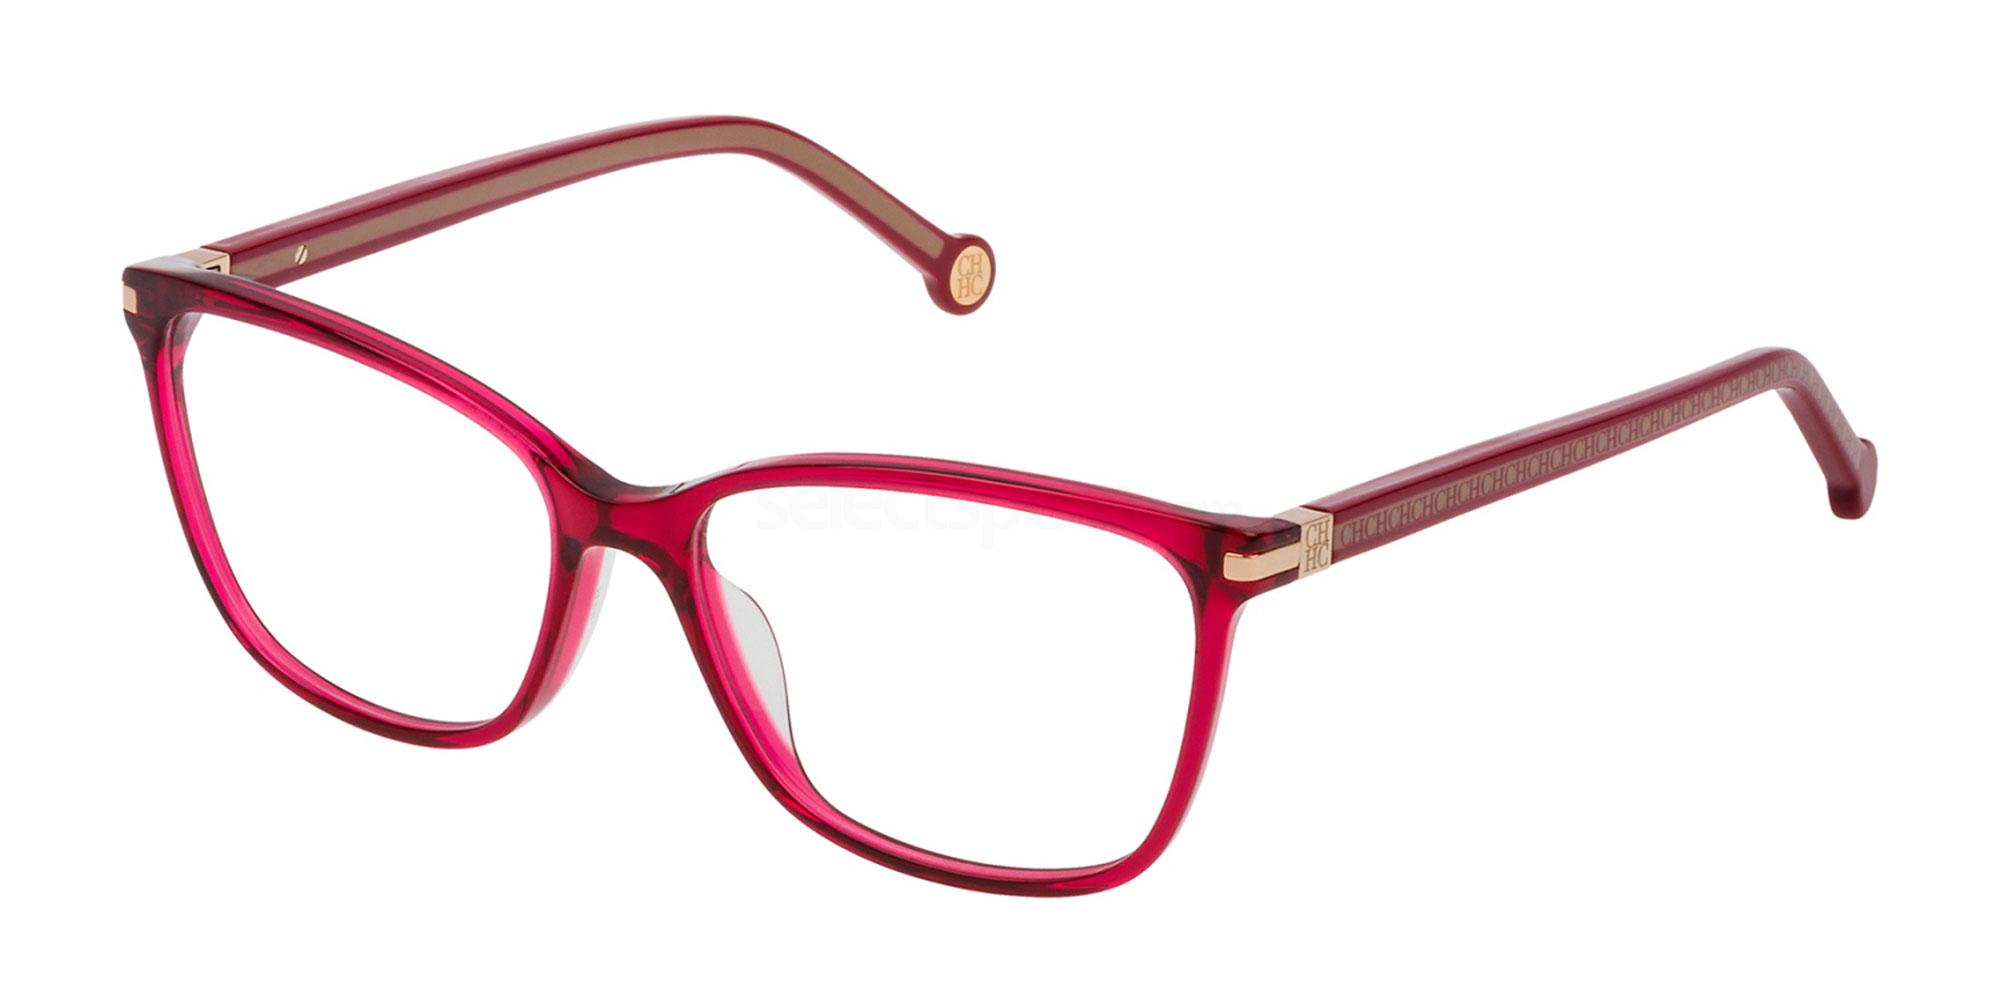 01BV VHE775 Glasses, CH Carolina Herrera